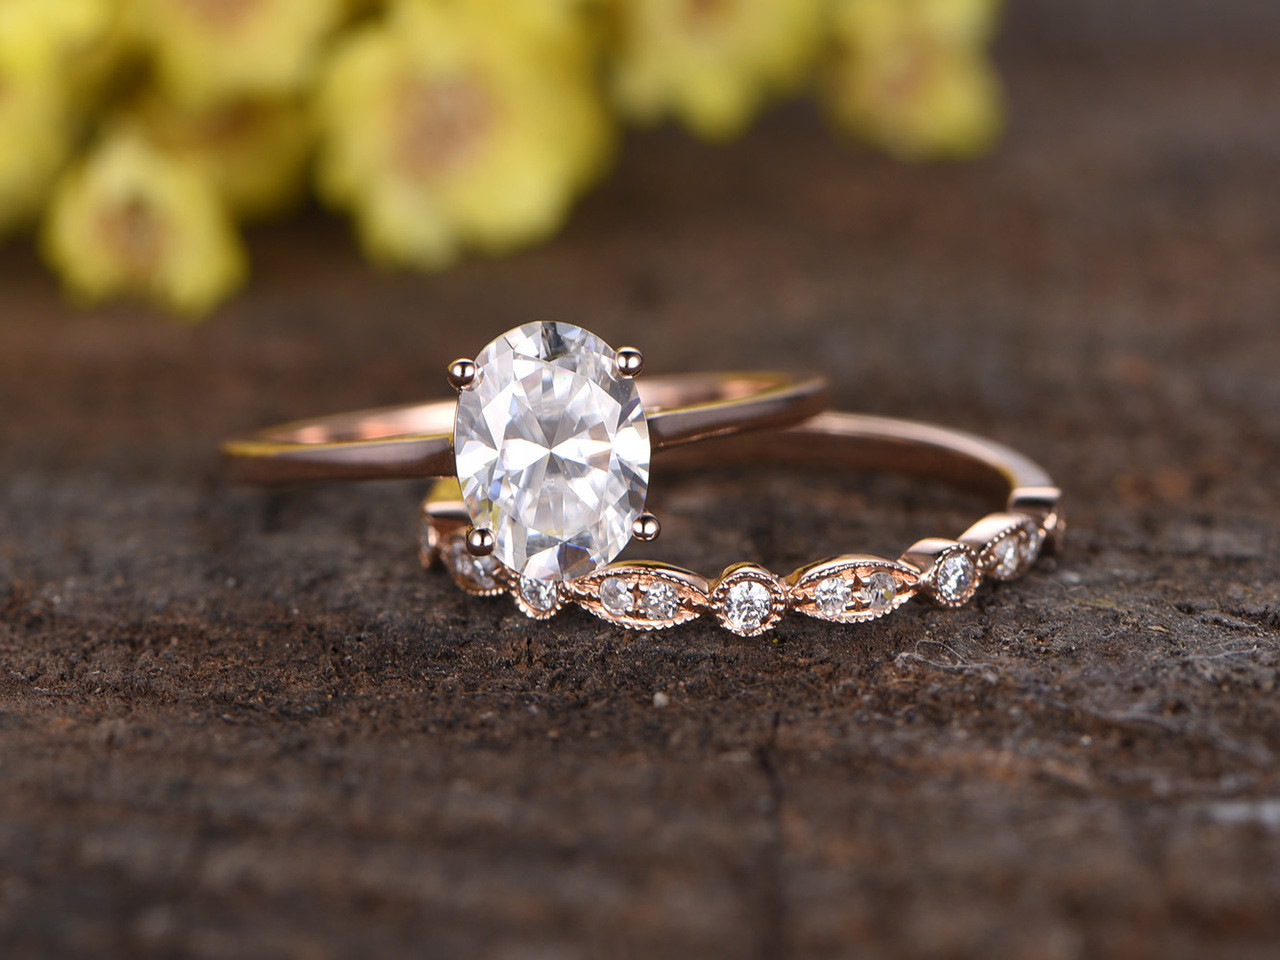 1.5 Carat Moissanite Solitaire Engagement Ring Set Diamond